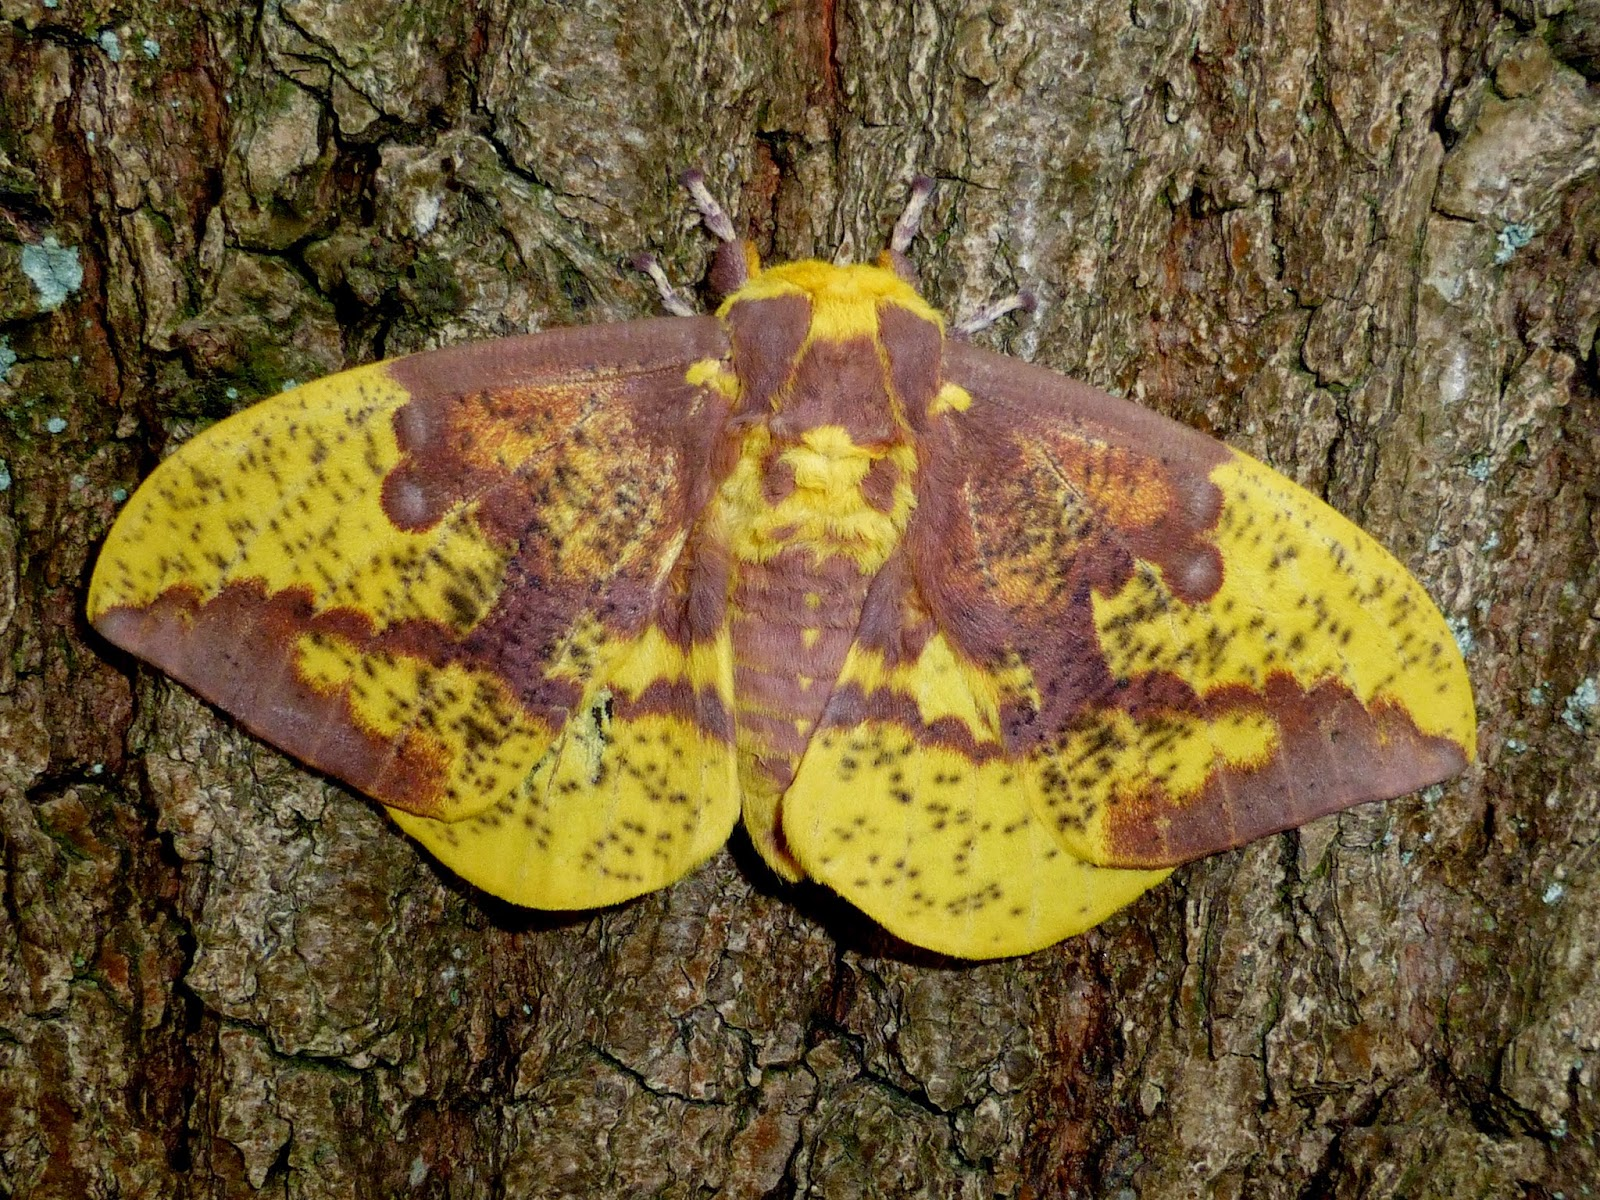 Eacles imperialis male